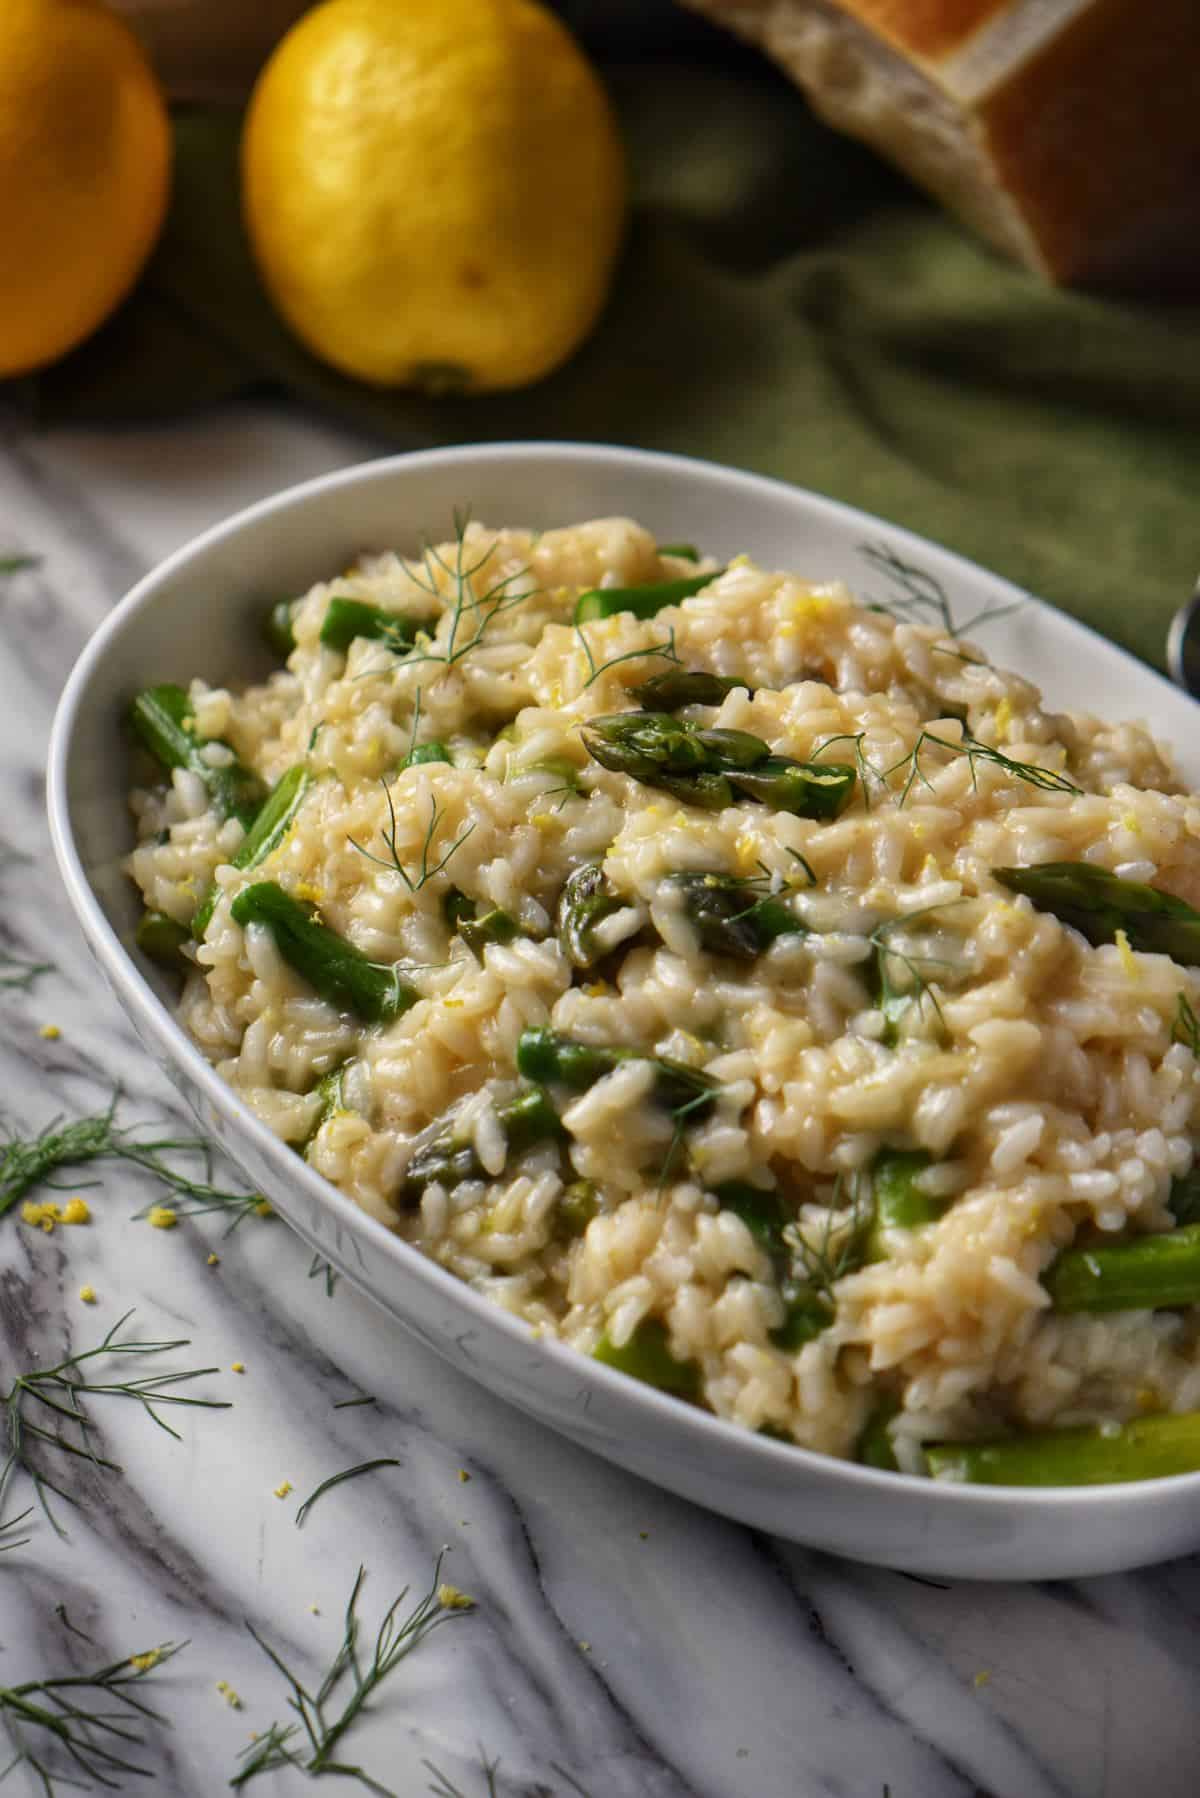 A white oval bowl is filled with creamy asparagus risotto. In the background. a lemon and a block of Parmesan cheese are visible.